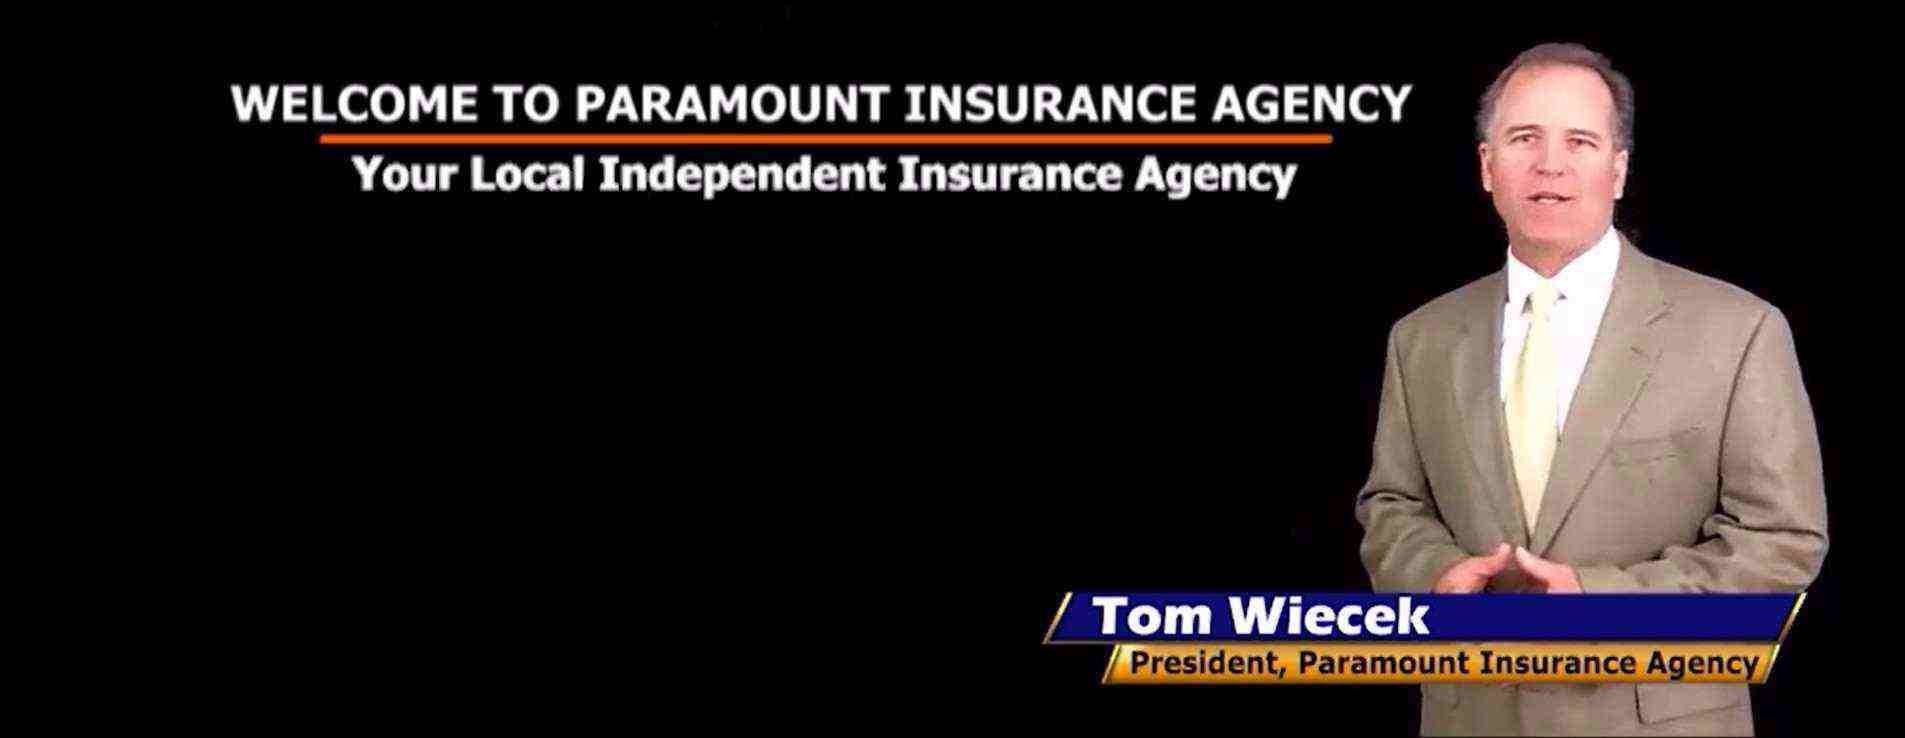 Welcome to Paramount Insurance